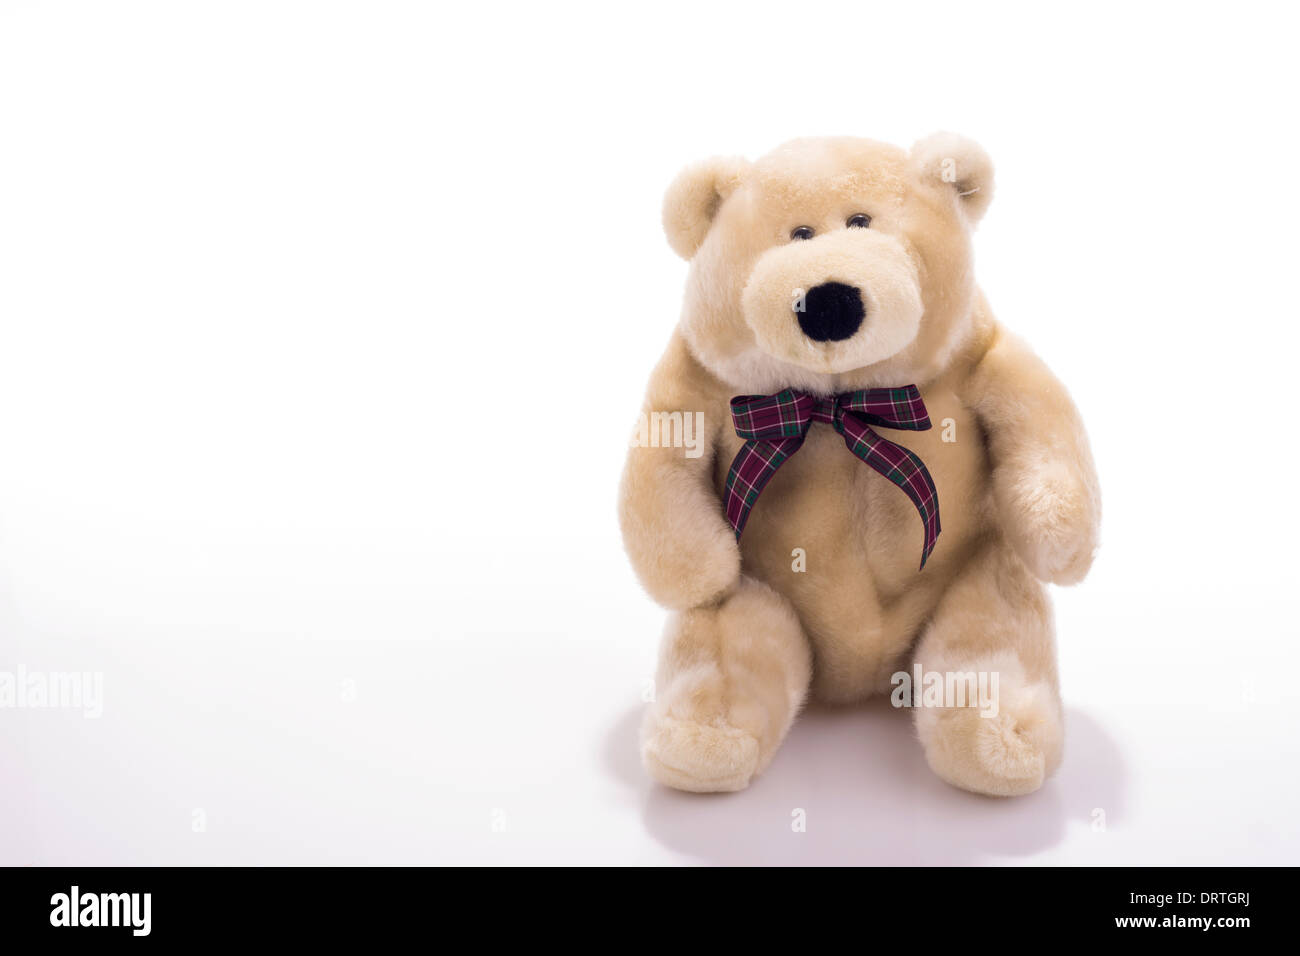 Toy teddy bear wearing bow-tie isolated on white - Stock Image